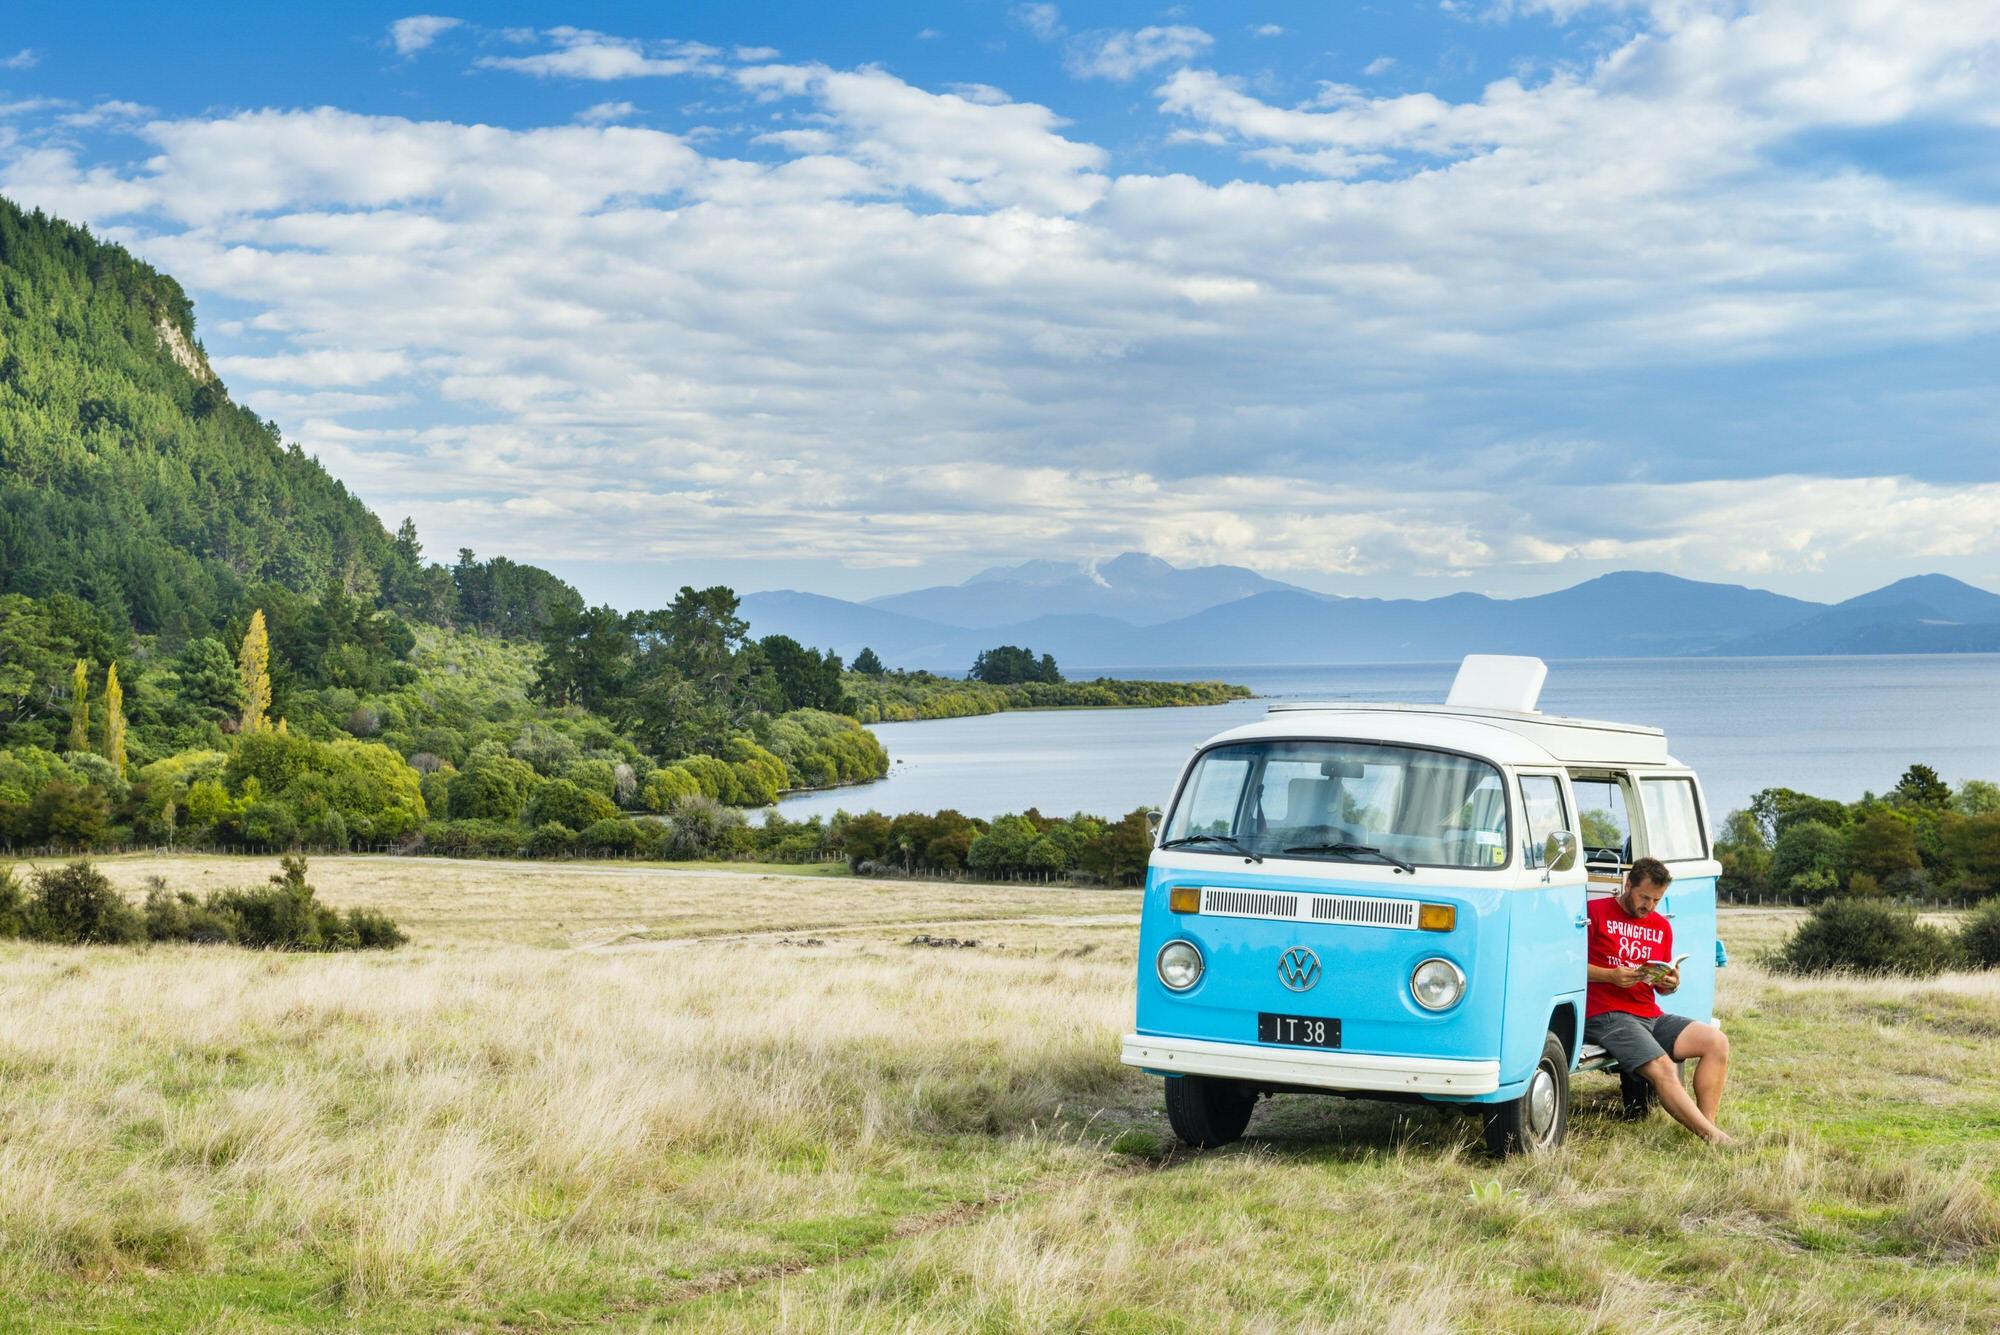 Campervan beside Lake Taupo, North Island, New Zealand © Justin Foulkes / Lonely Planet